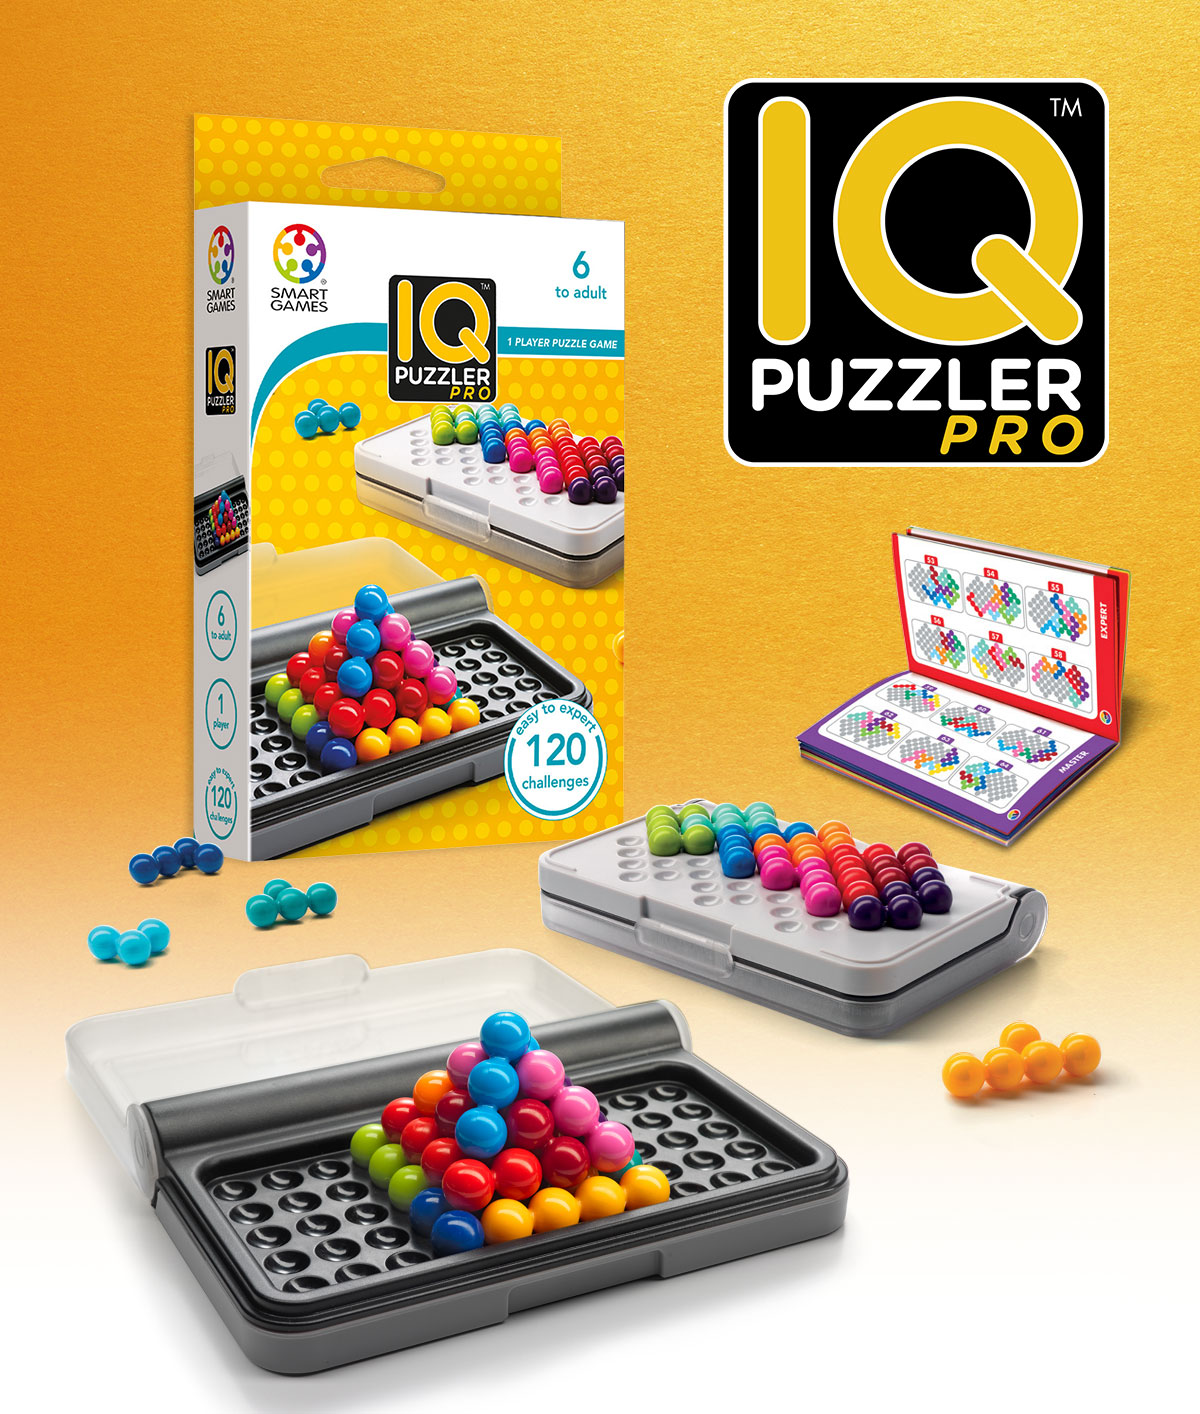 smart games iq puzzler instructions